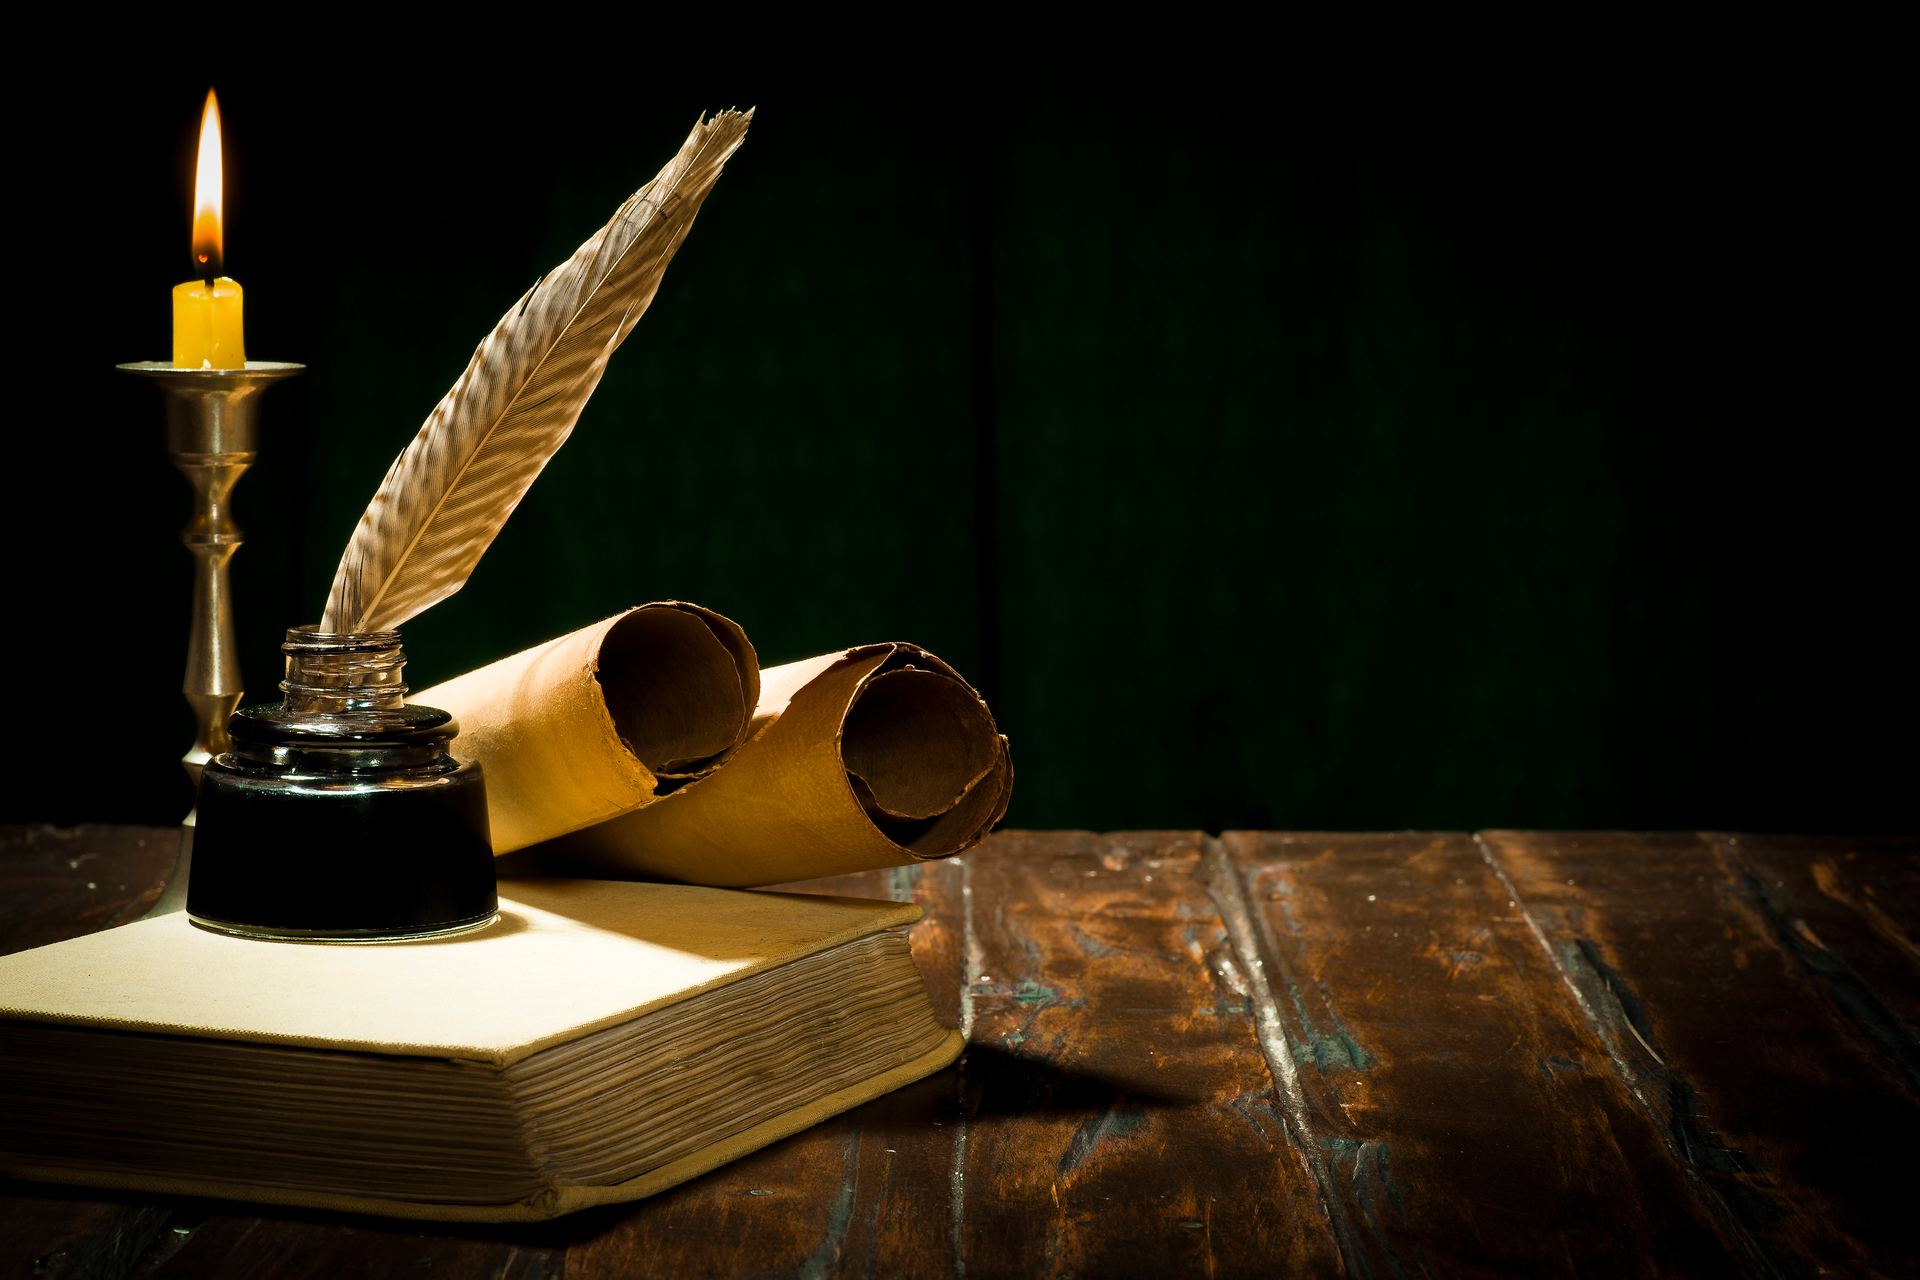 stock-photo-education-and-writing-concept-pen-in-ink-bottle-and-candlestick-with-candle-on-wooden-table-on